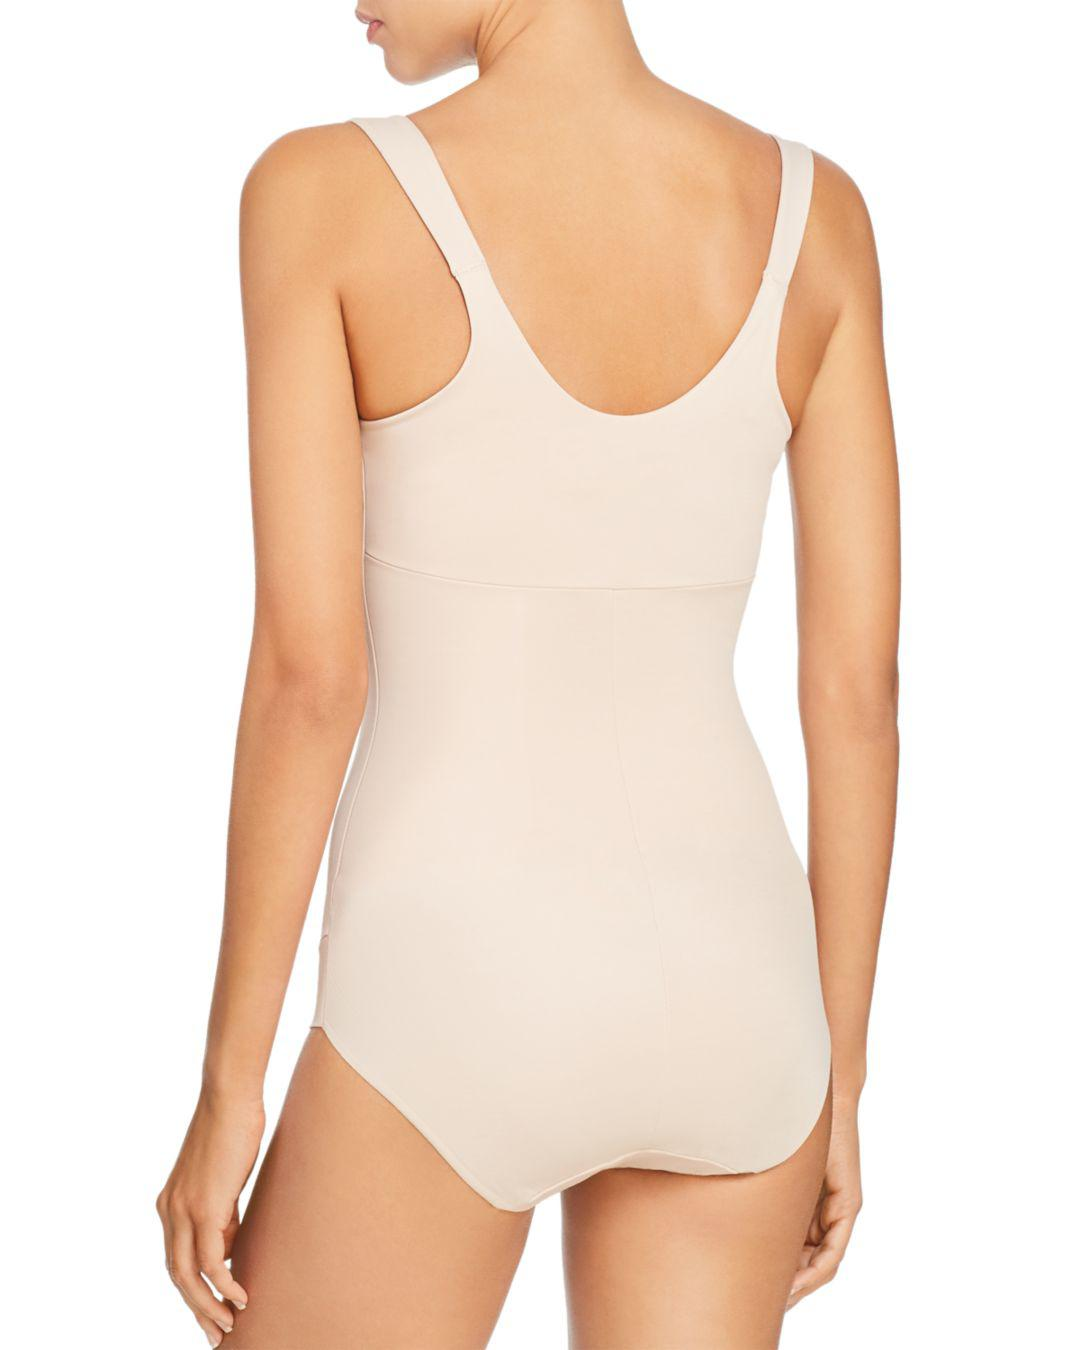 d3a86a748cb54 Lyst - Tc Fine Intimates Bodybriefer Torsette Shaping Bodysuit in Natural